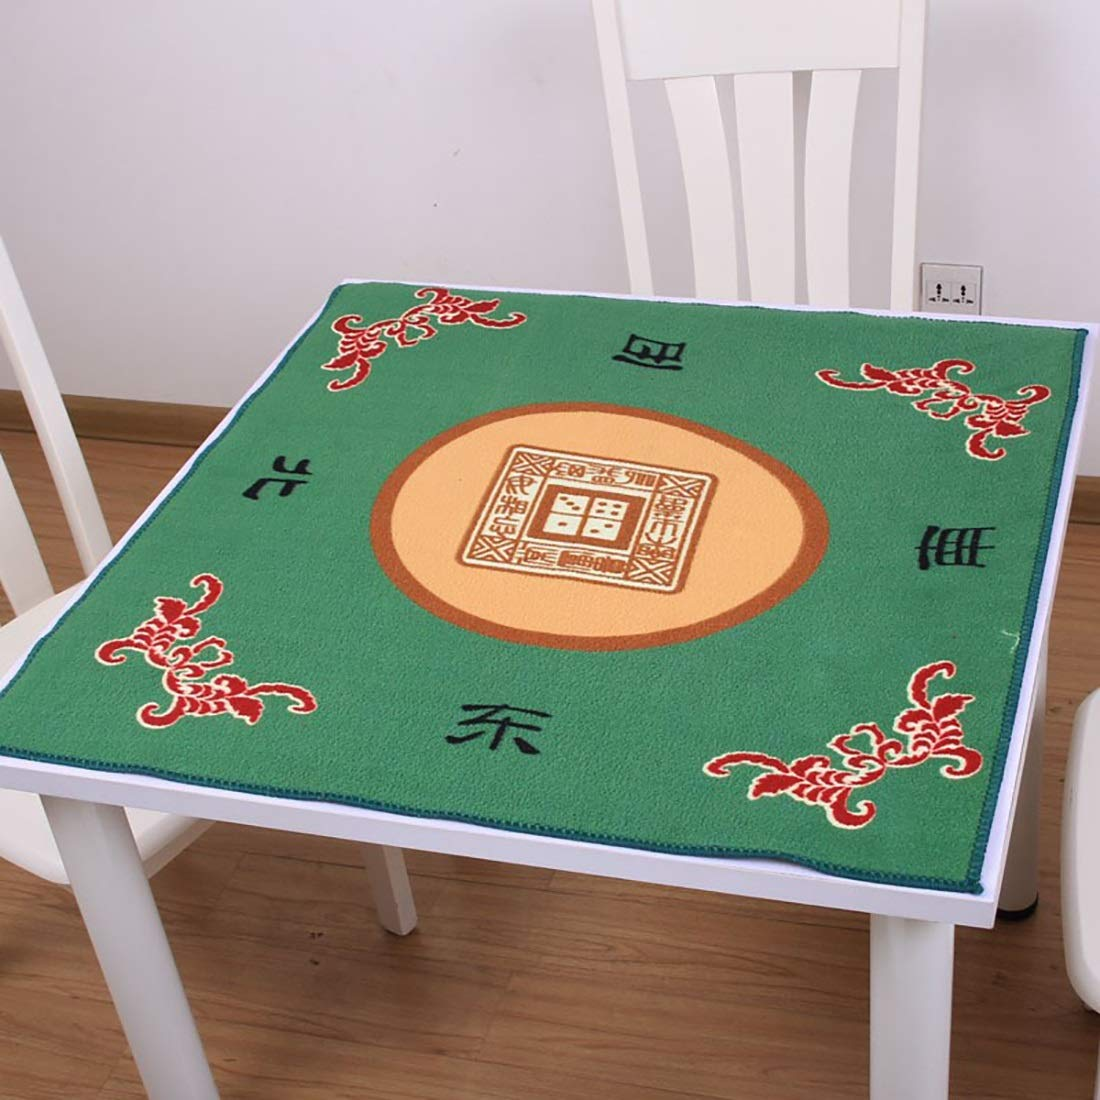 Hexiansheng Mahjong Mat Poker Mat Table Cover for Poker, Card Games, Board Games, Tile Games, Dominoes, and Mahjong Anti Slip and Low Noise78X78cm ( color   DOLLER GREEN , Size   78CM78CM )